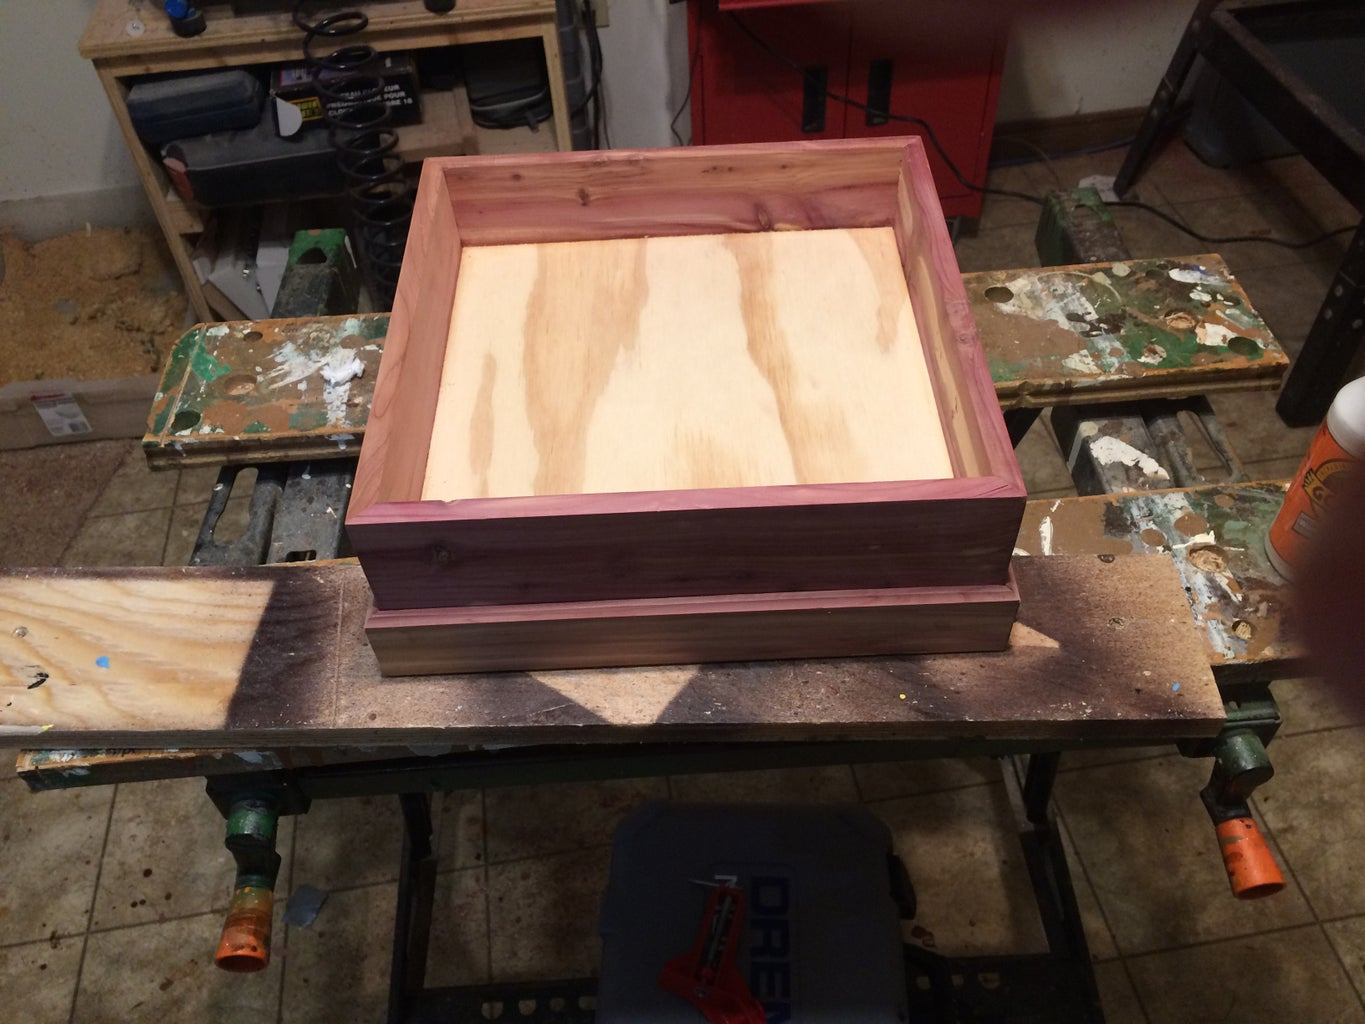 Attaching the Base to the Box